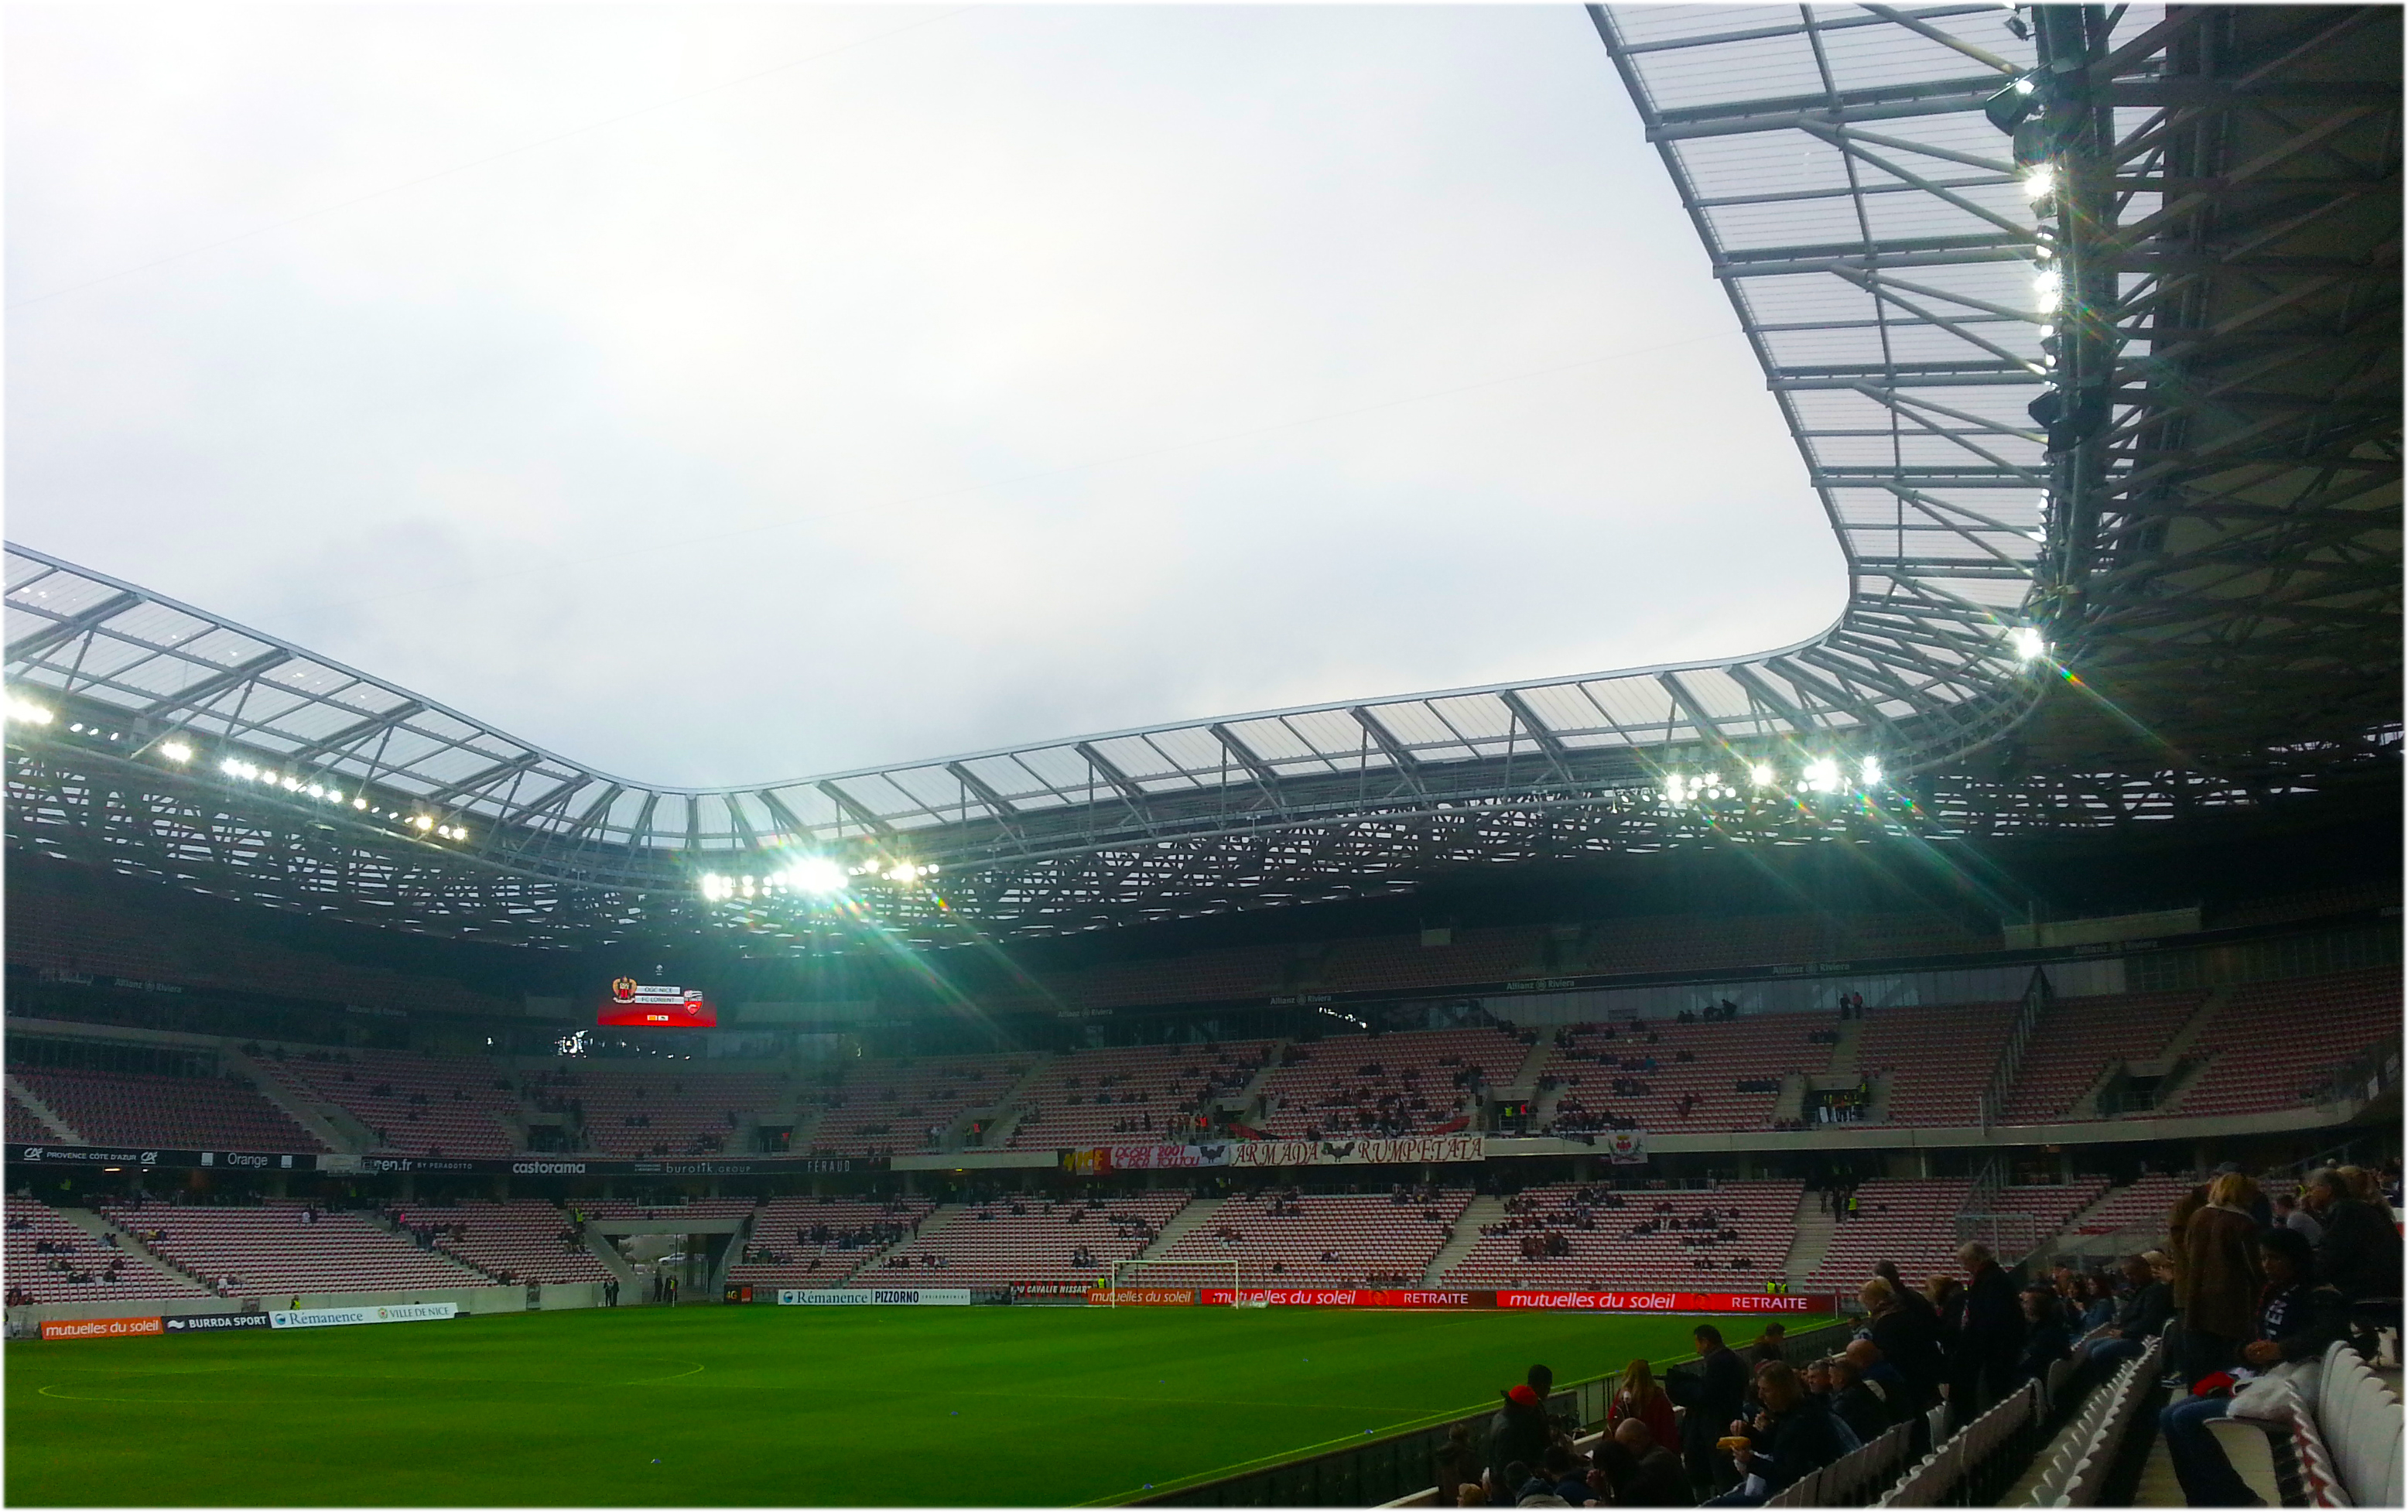 La tribune Ray au Nord de l'Allianz Riviera